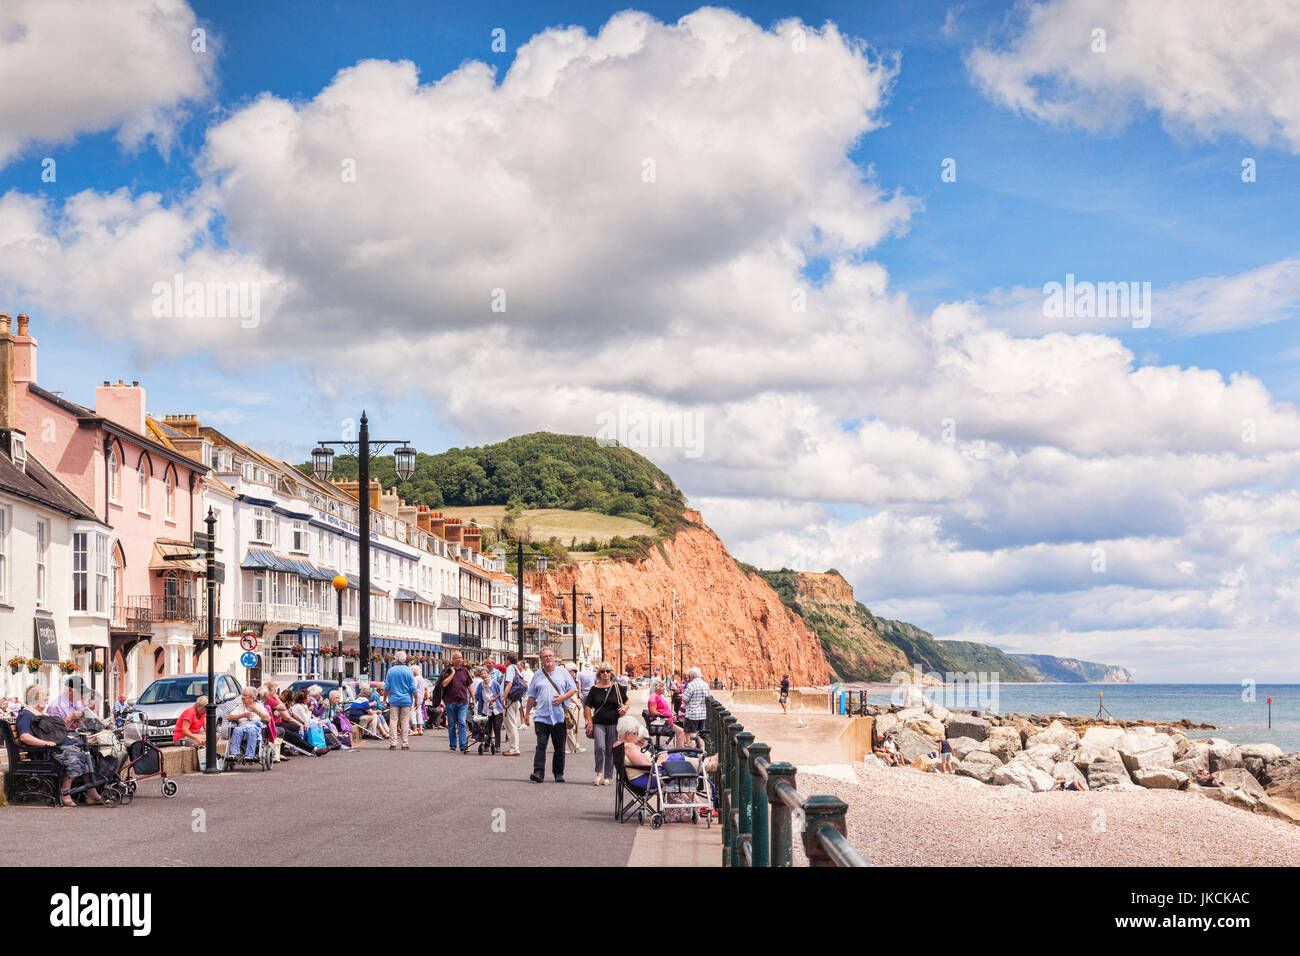 3 July 2017: Sidmouth, Dorset, England, UK - Visitors strolling on the promenade on a sunny summer day with blue Stock Photo